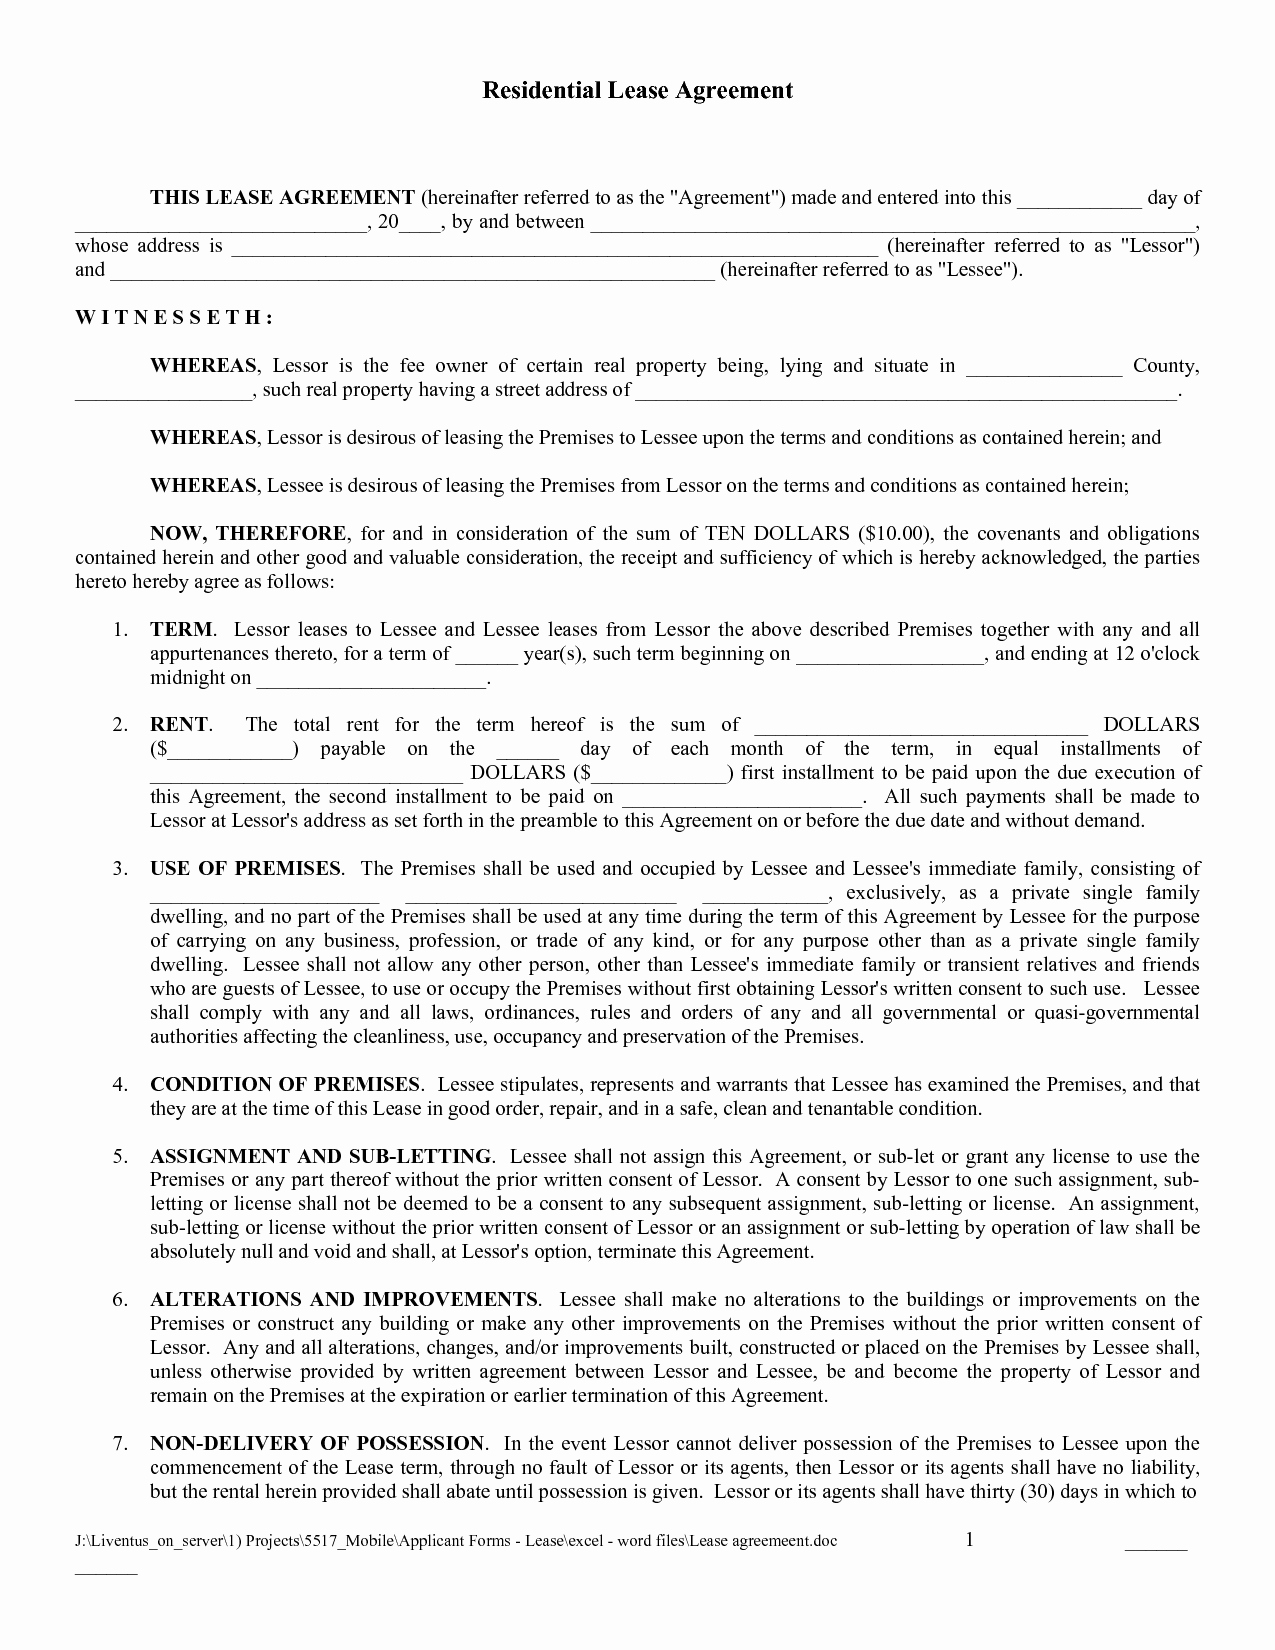 Residential Rental Agreement form Inspirational Free Copy Rental Lease Agreement